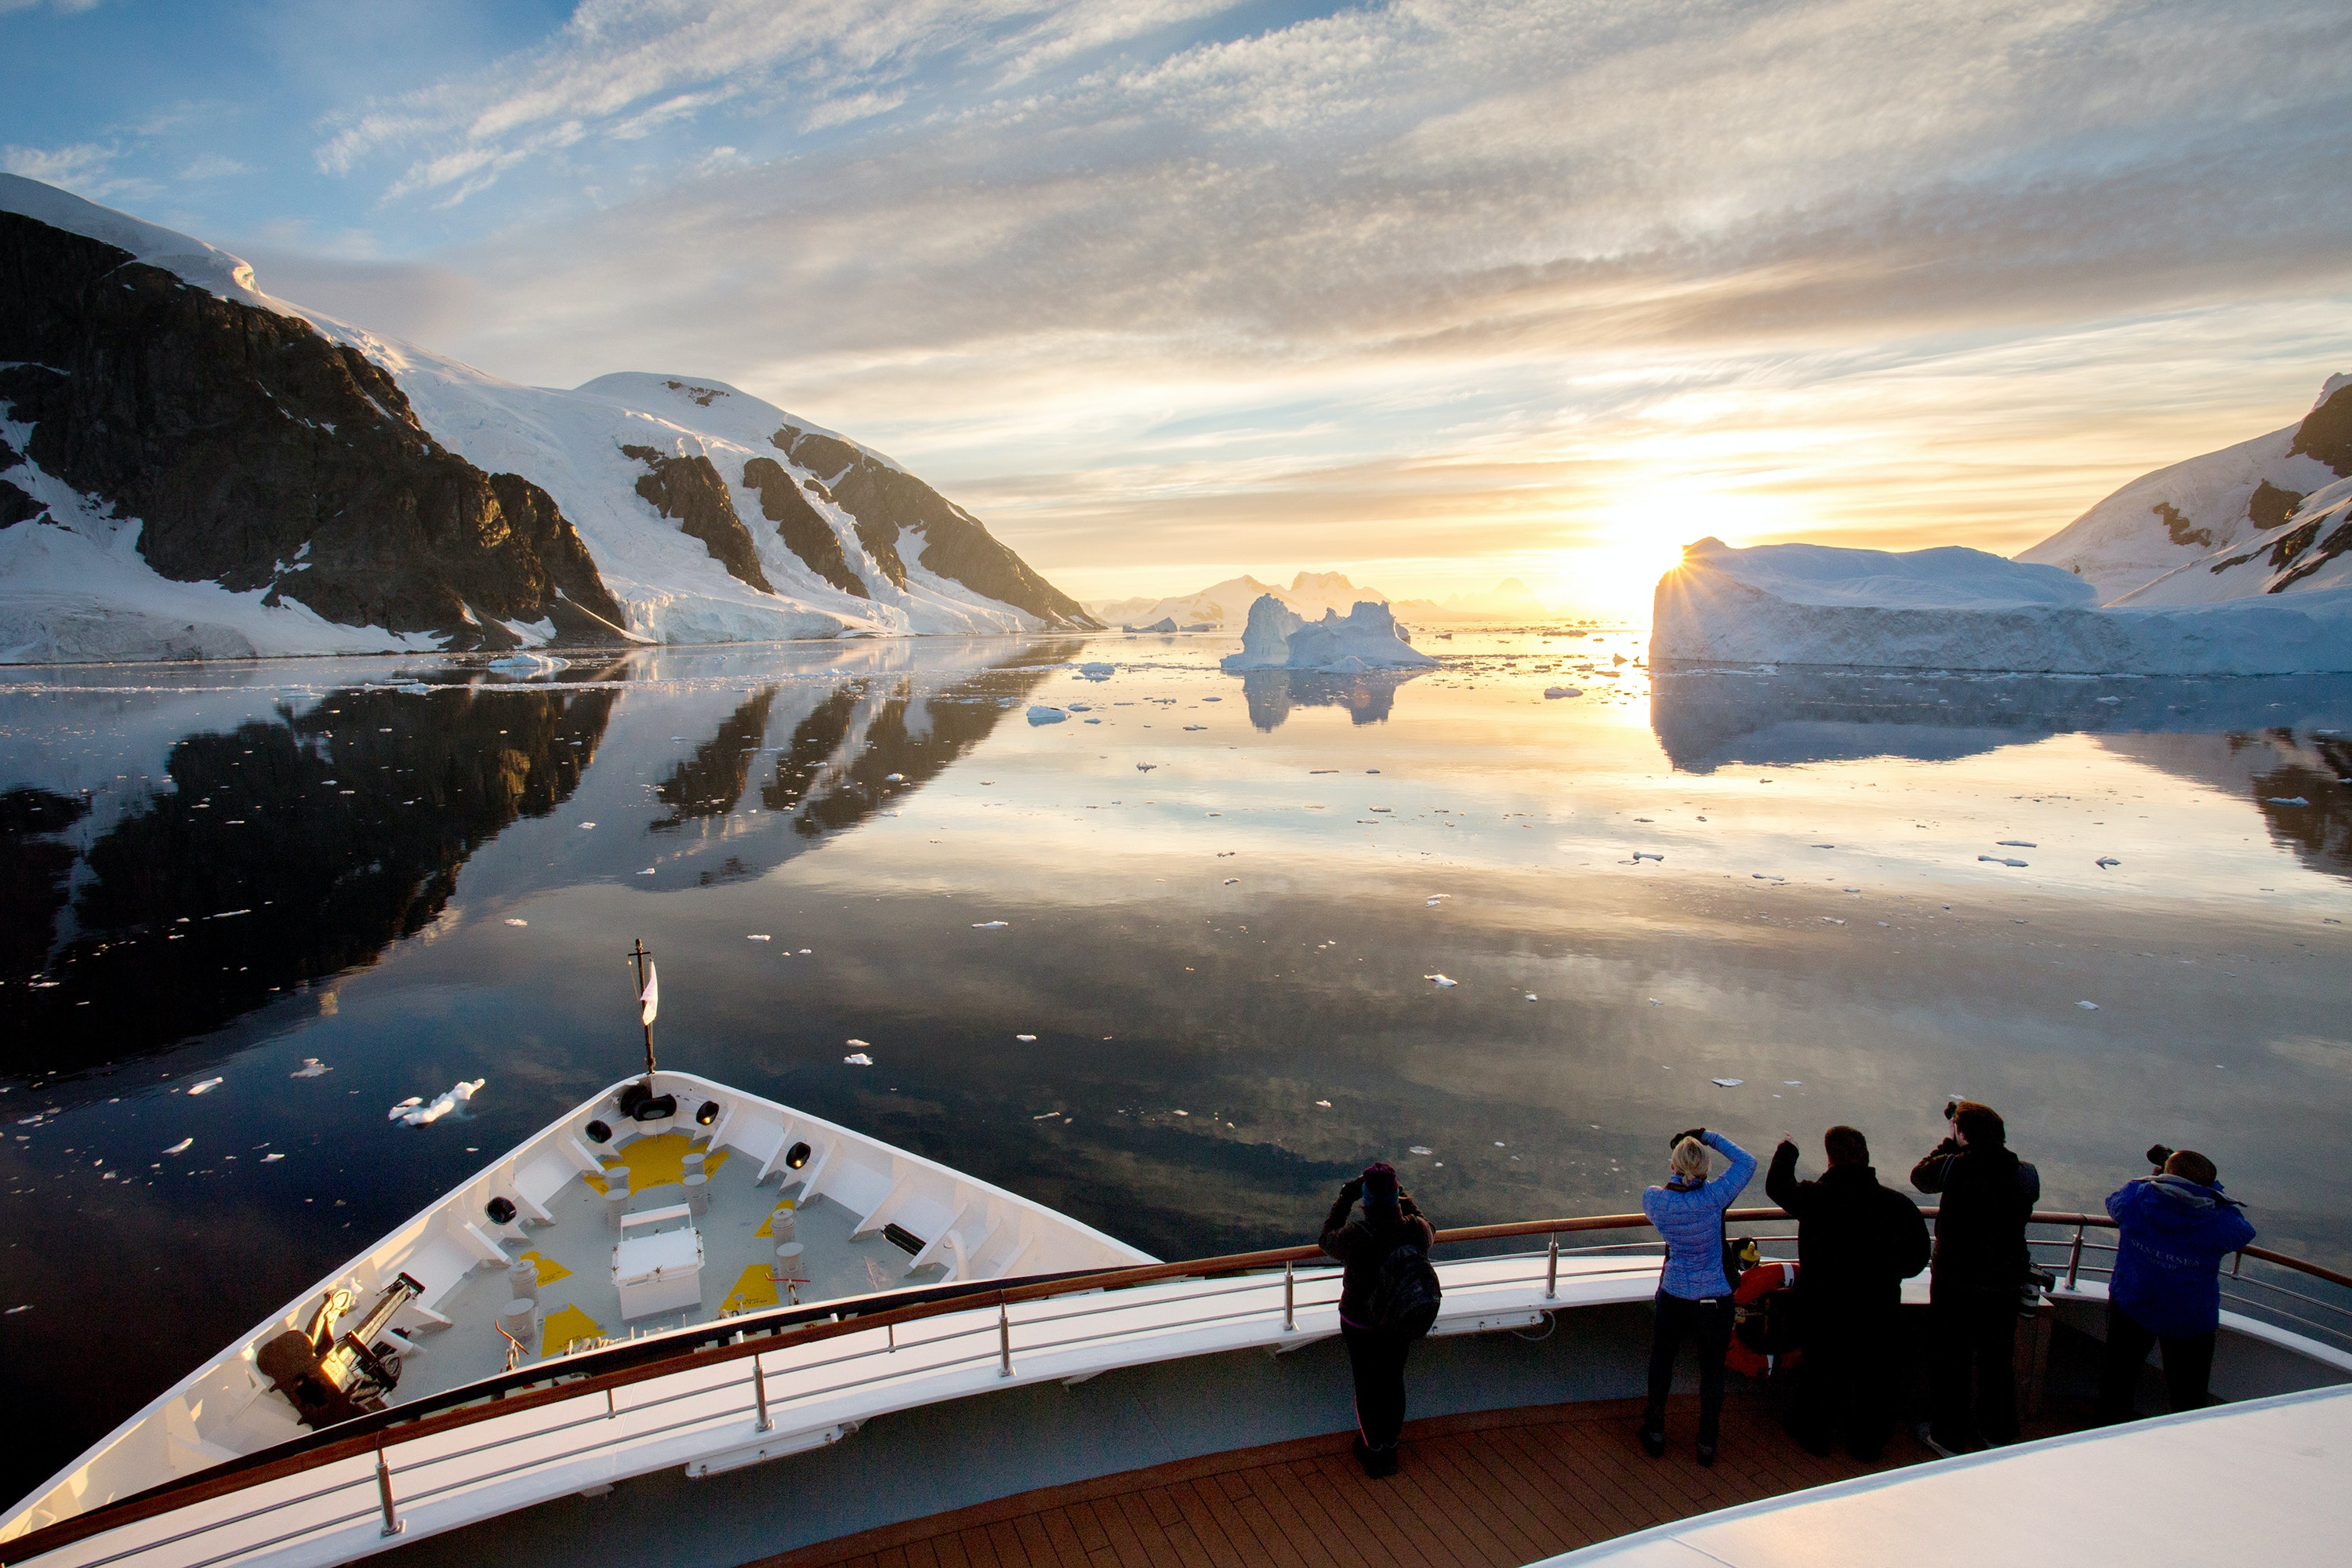 A voyage with Silversea Expeditions means personalized service and luxury adventure.